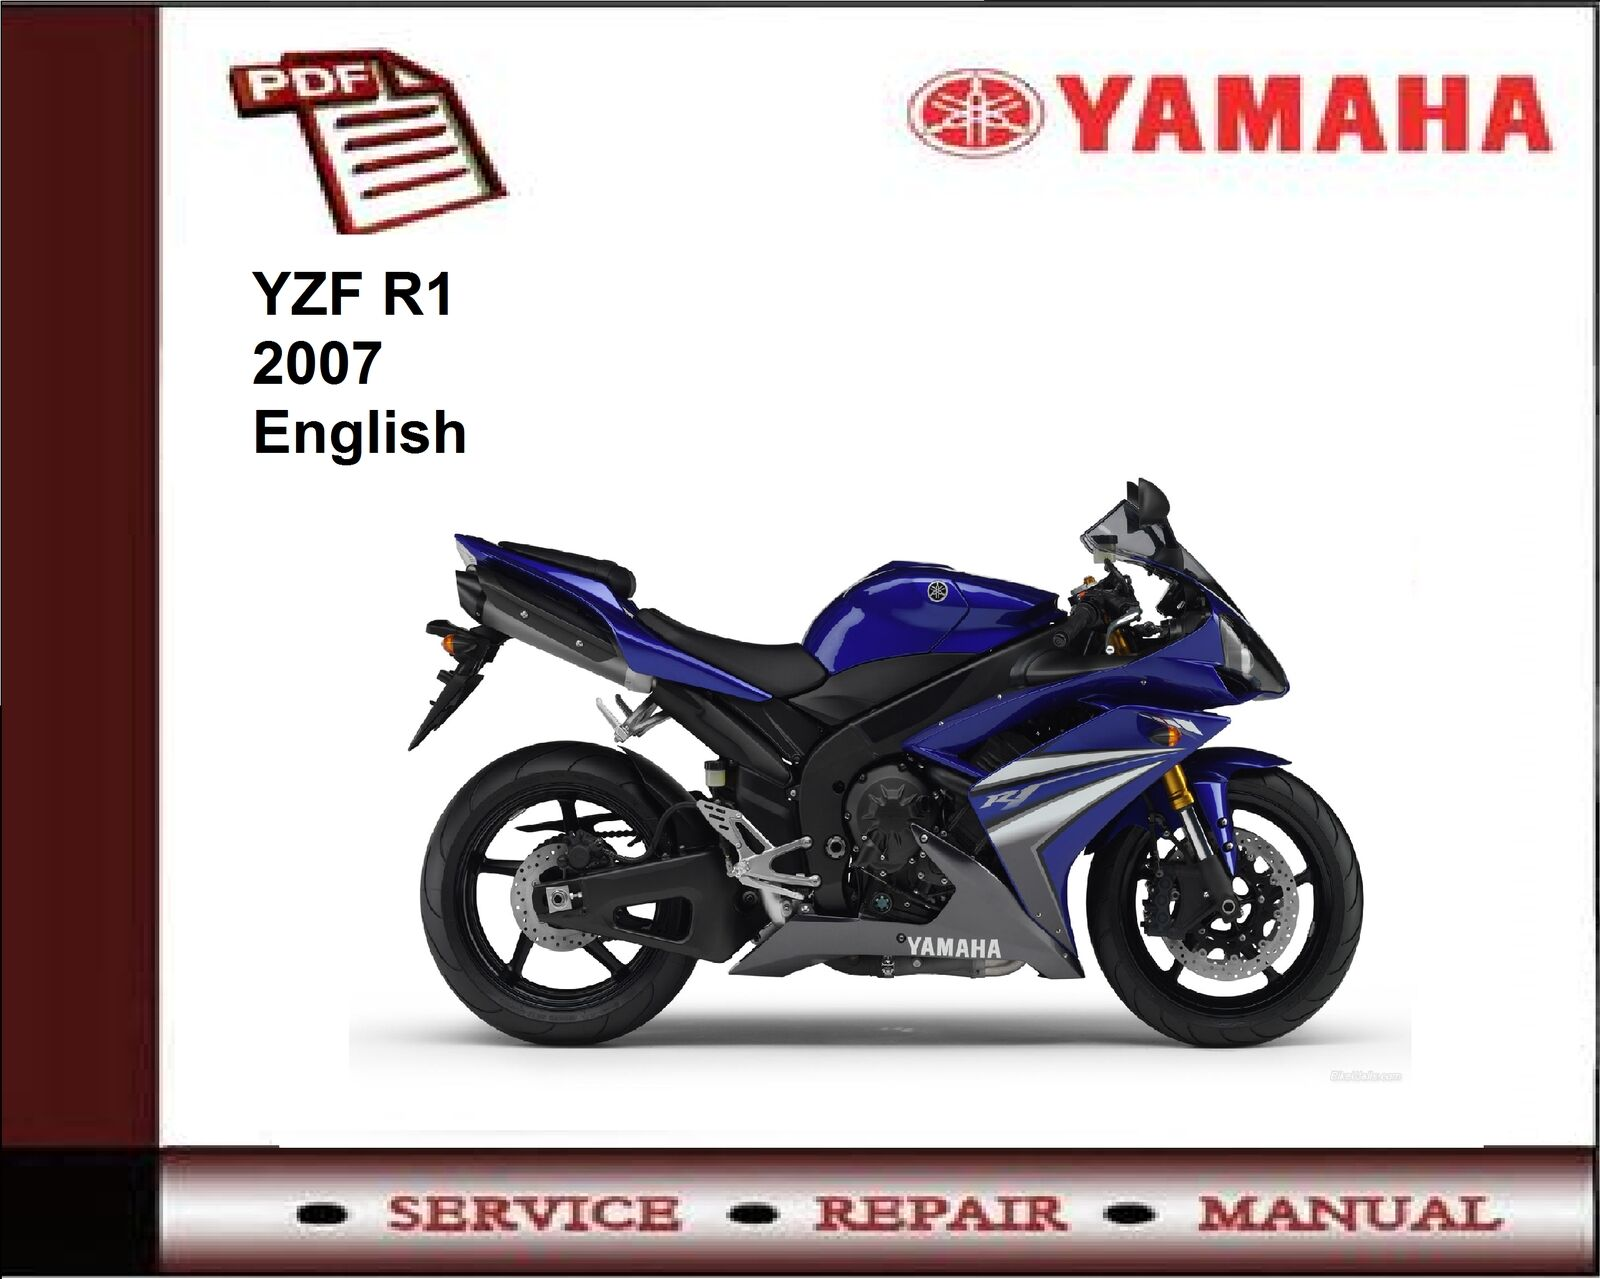 Yamaha YZF R1 YZFR1 2007 Workshop Service Repair Manual 1 of 1FREE Shipping  ...